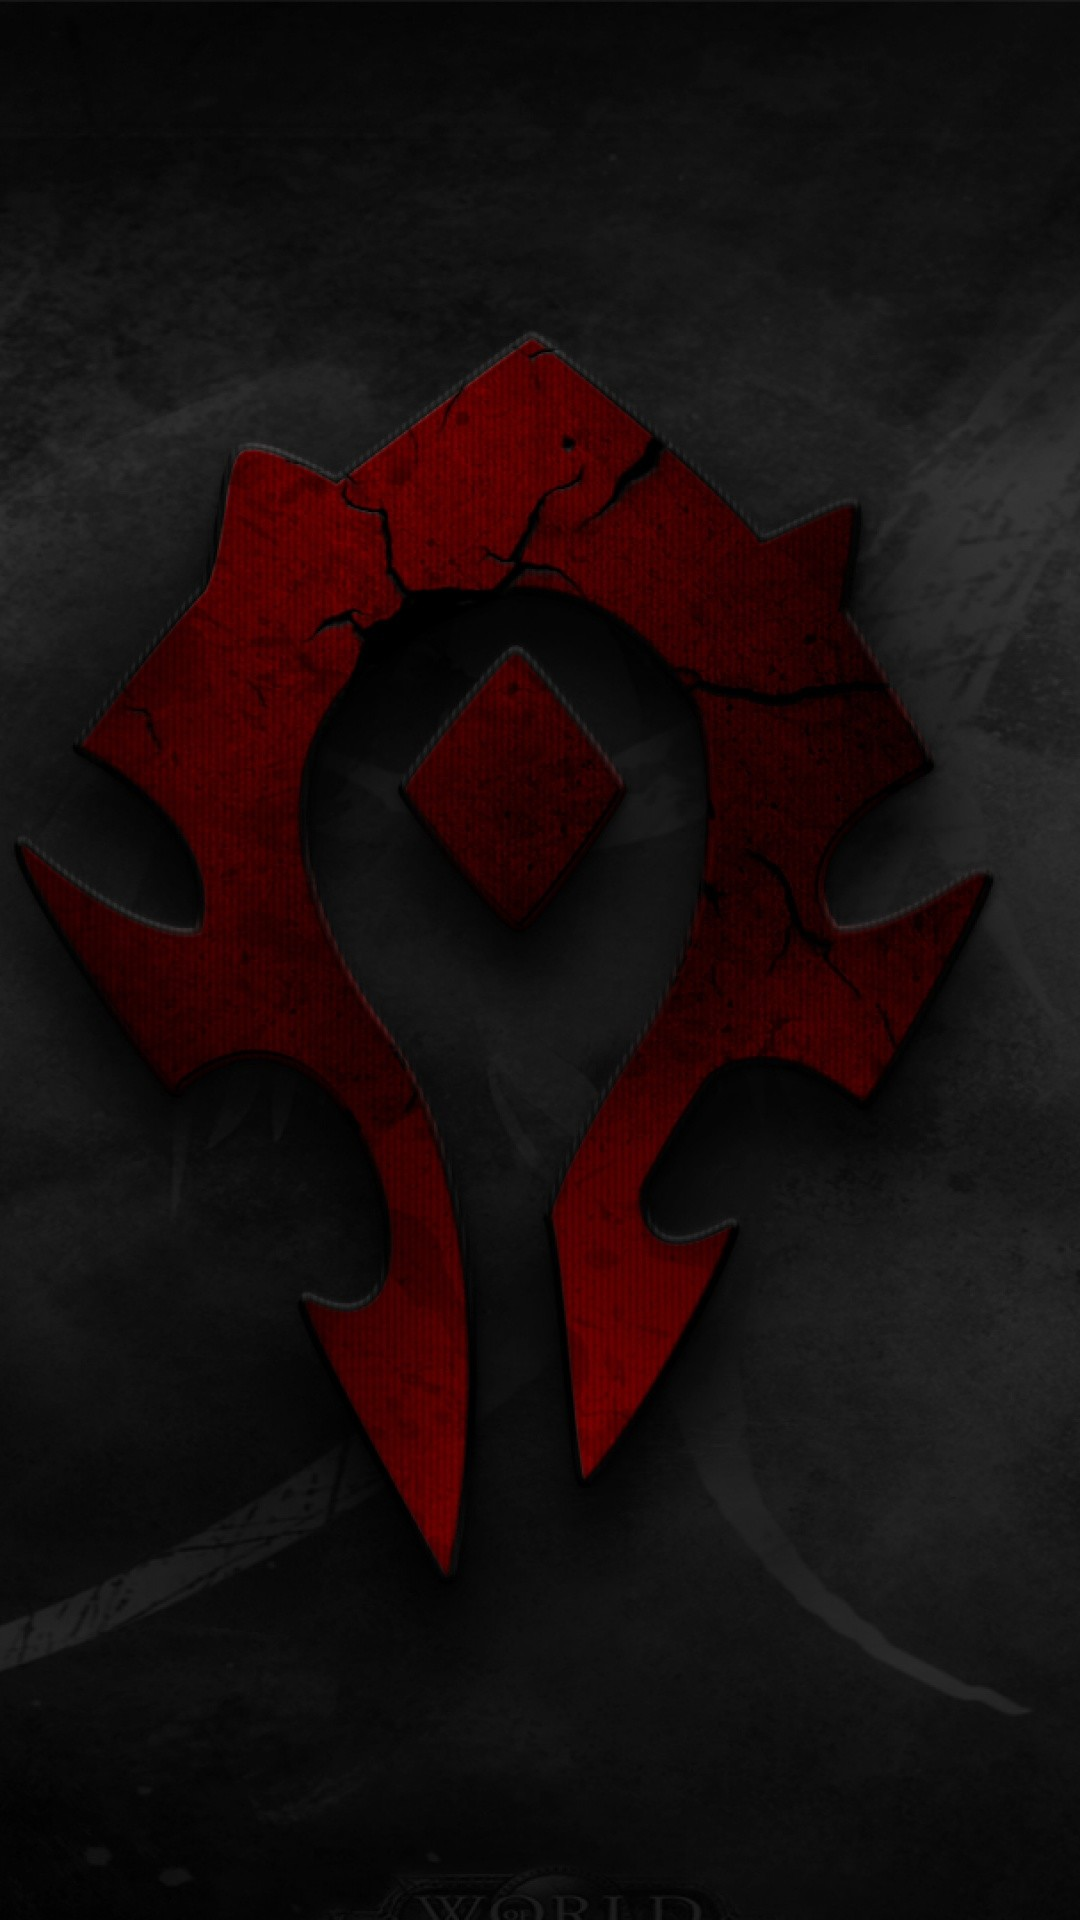 1080x1920 The Horde Mobile Phone Wallpaper | ID: 13524